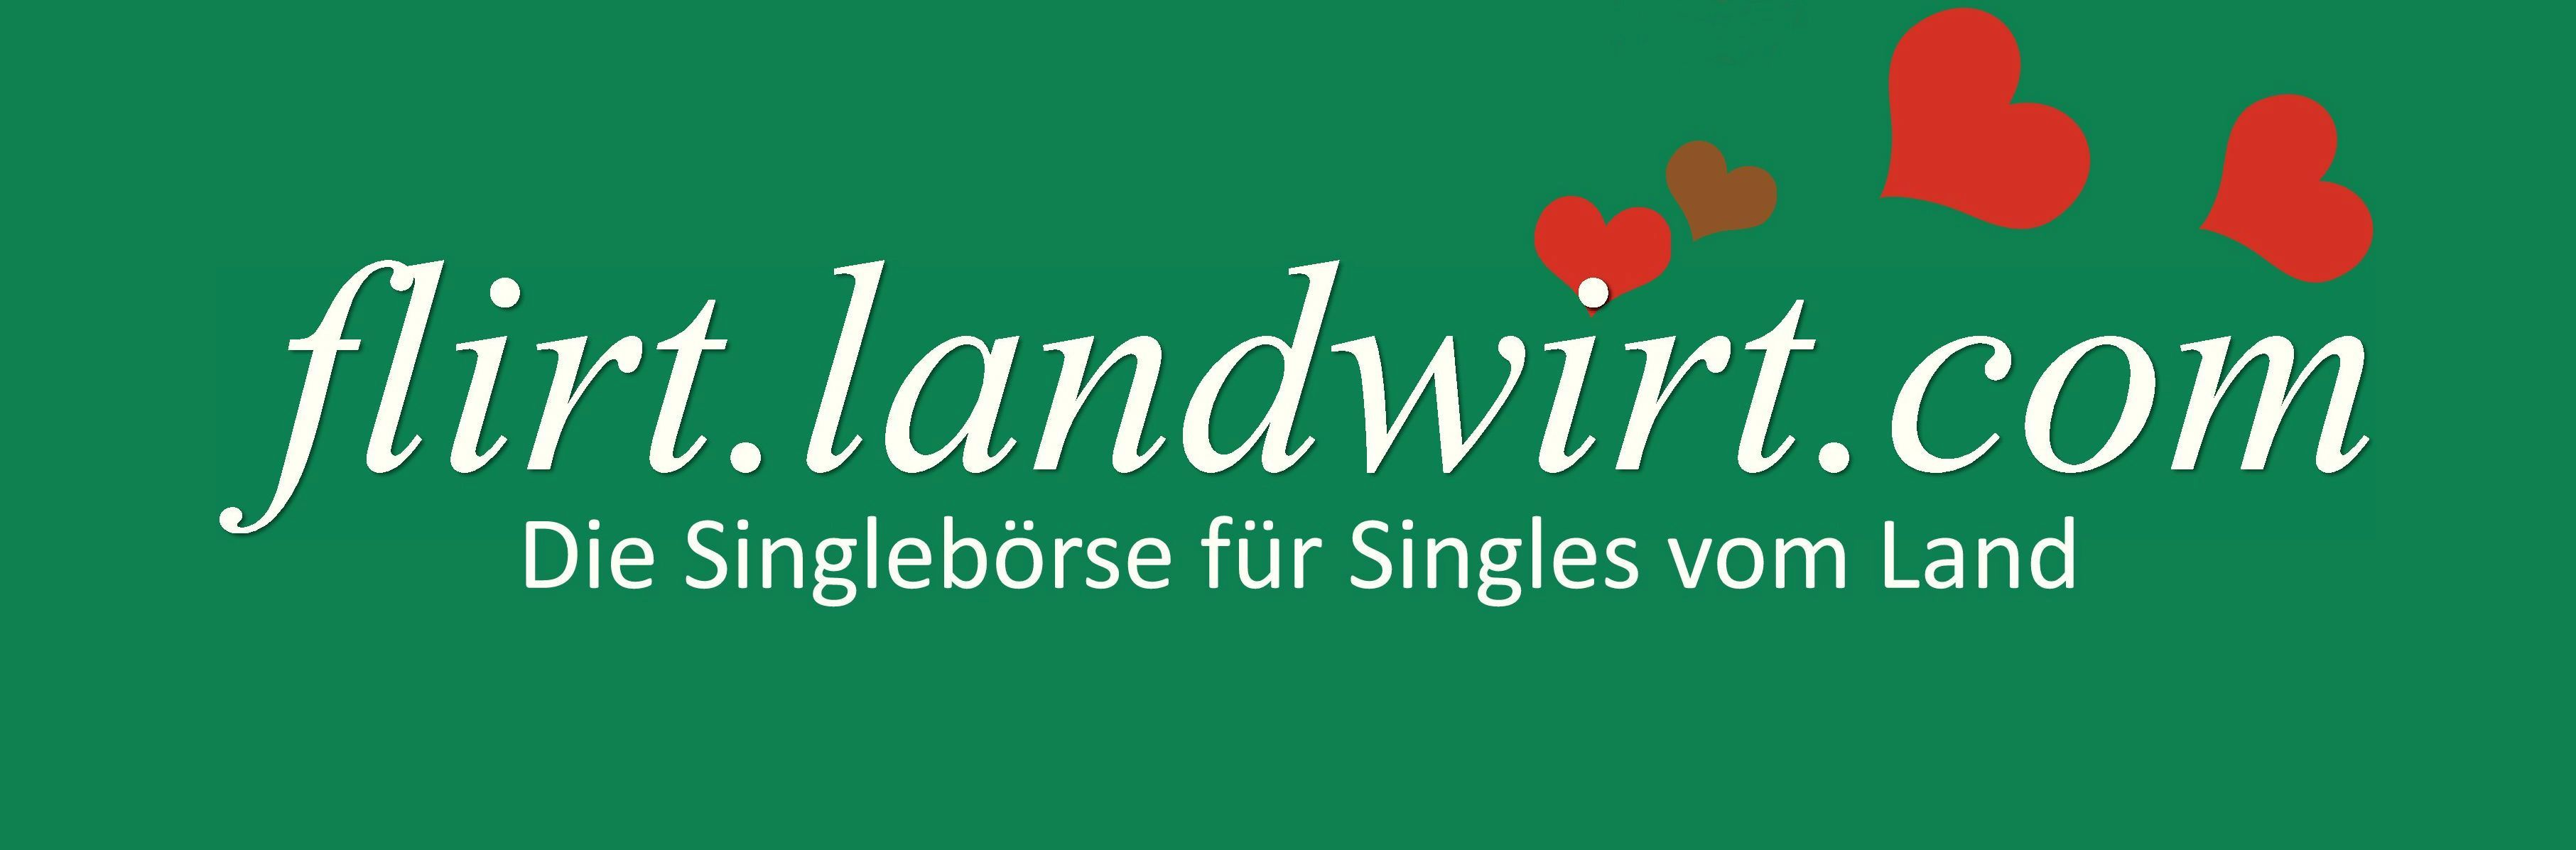 Westendorf single frauen, Frau single in alpbach